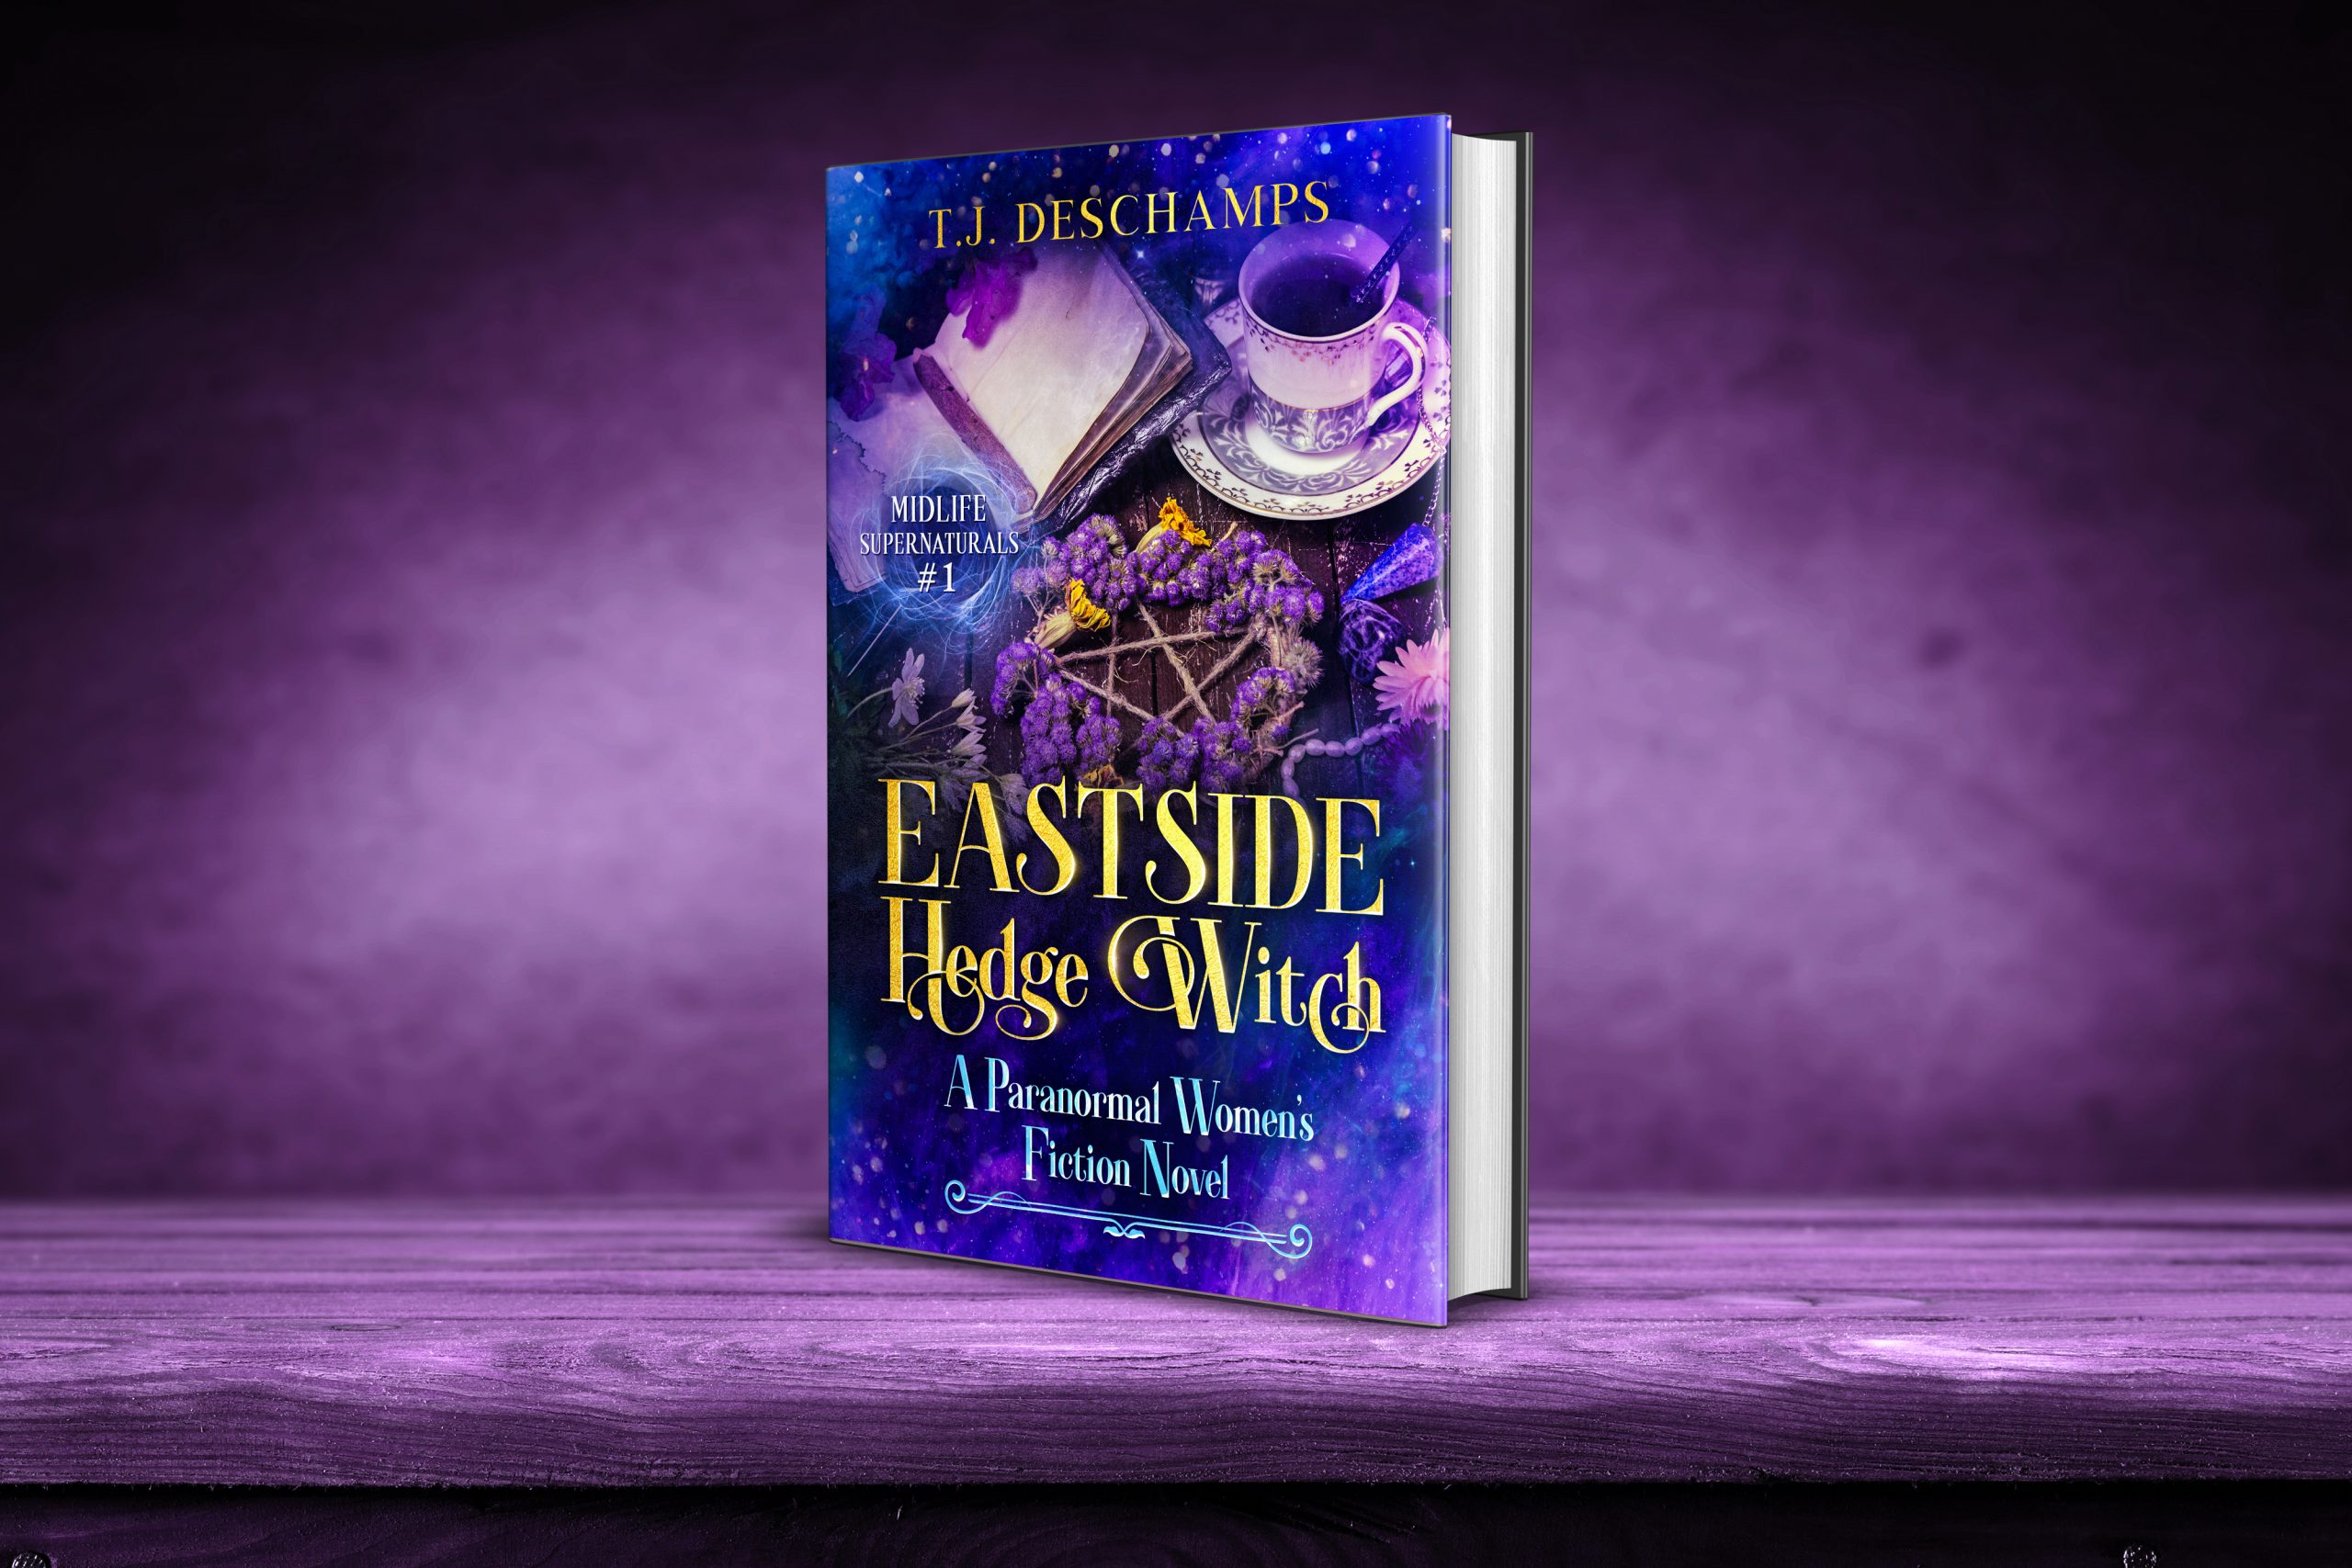 Eastside Hedge Witch: A Full Excerpt From Chapter One